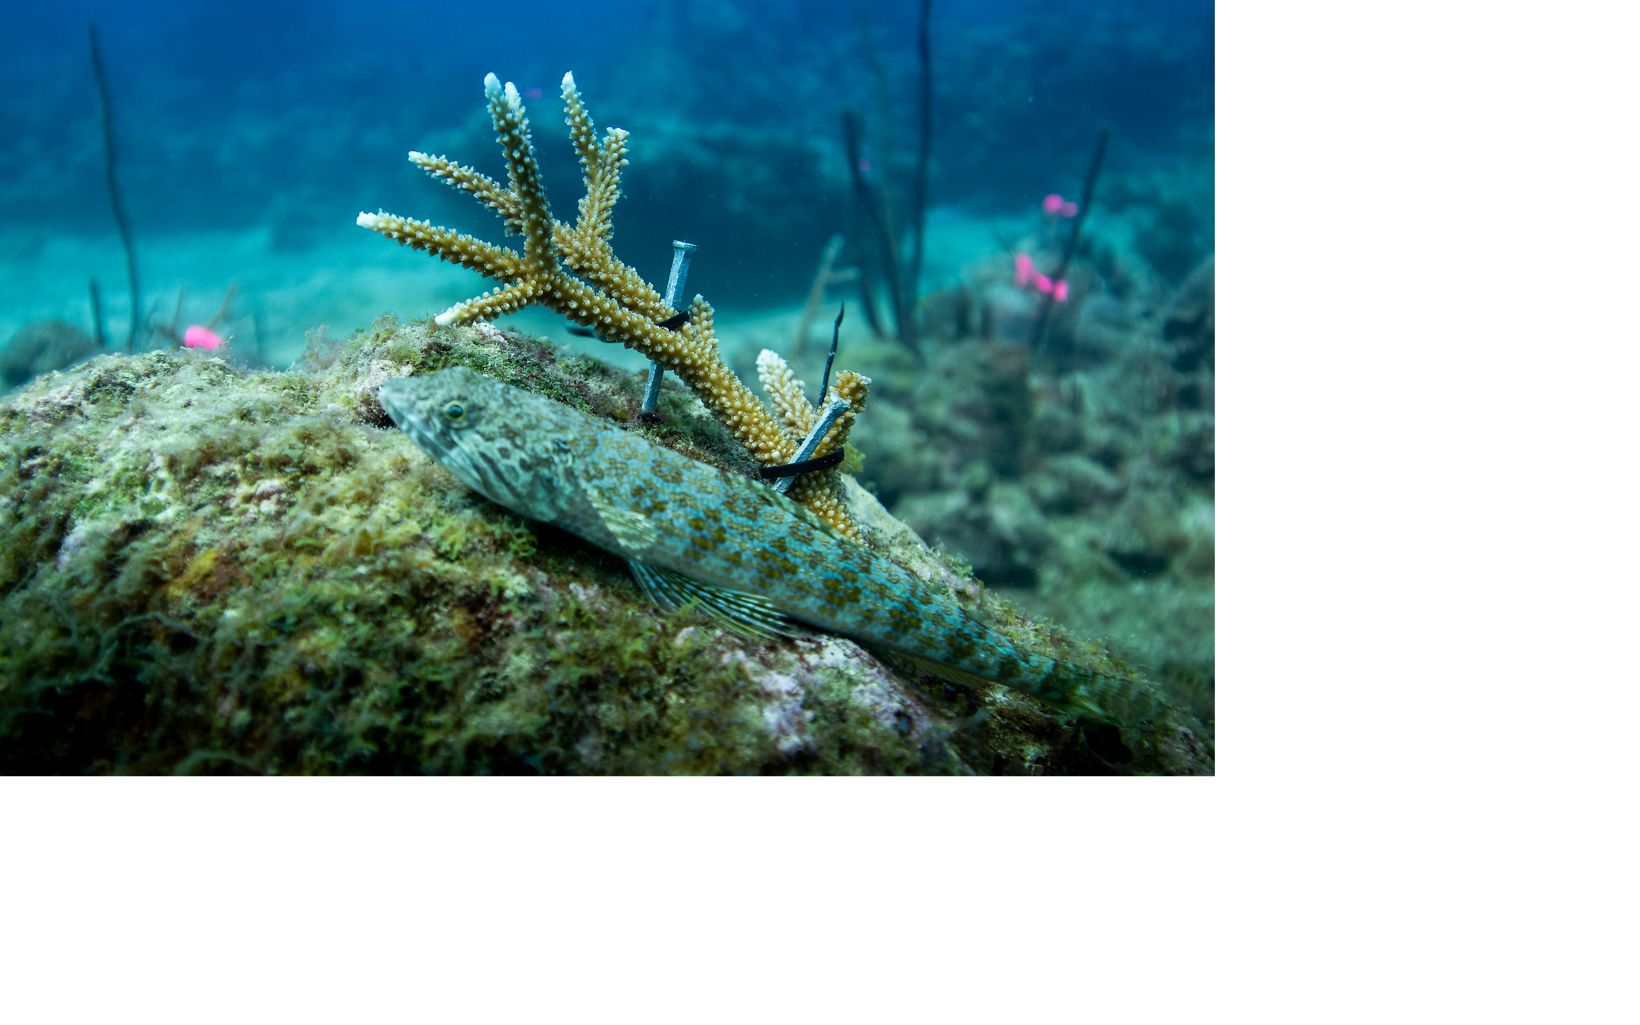 A coral fragment has been zip tied to the reef as part of restoration work.